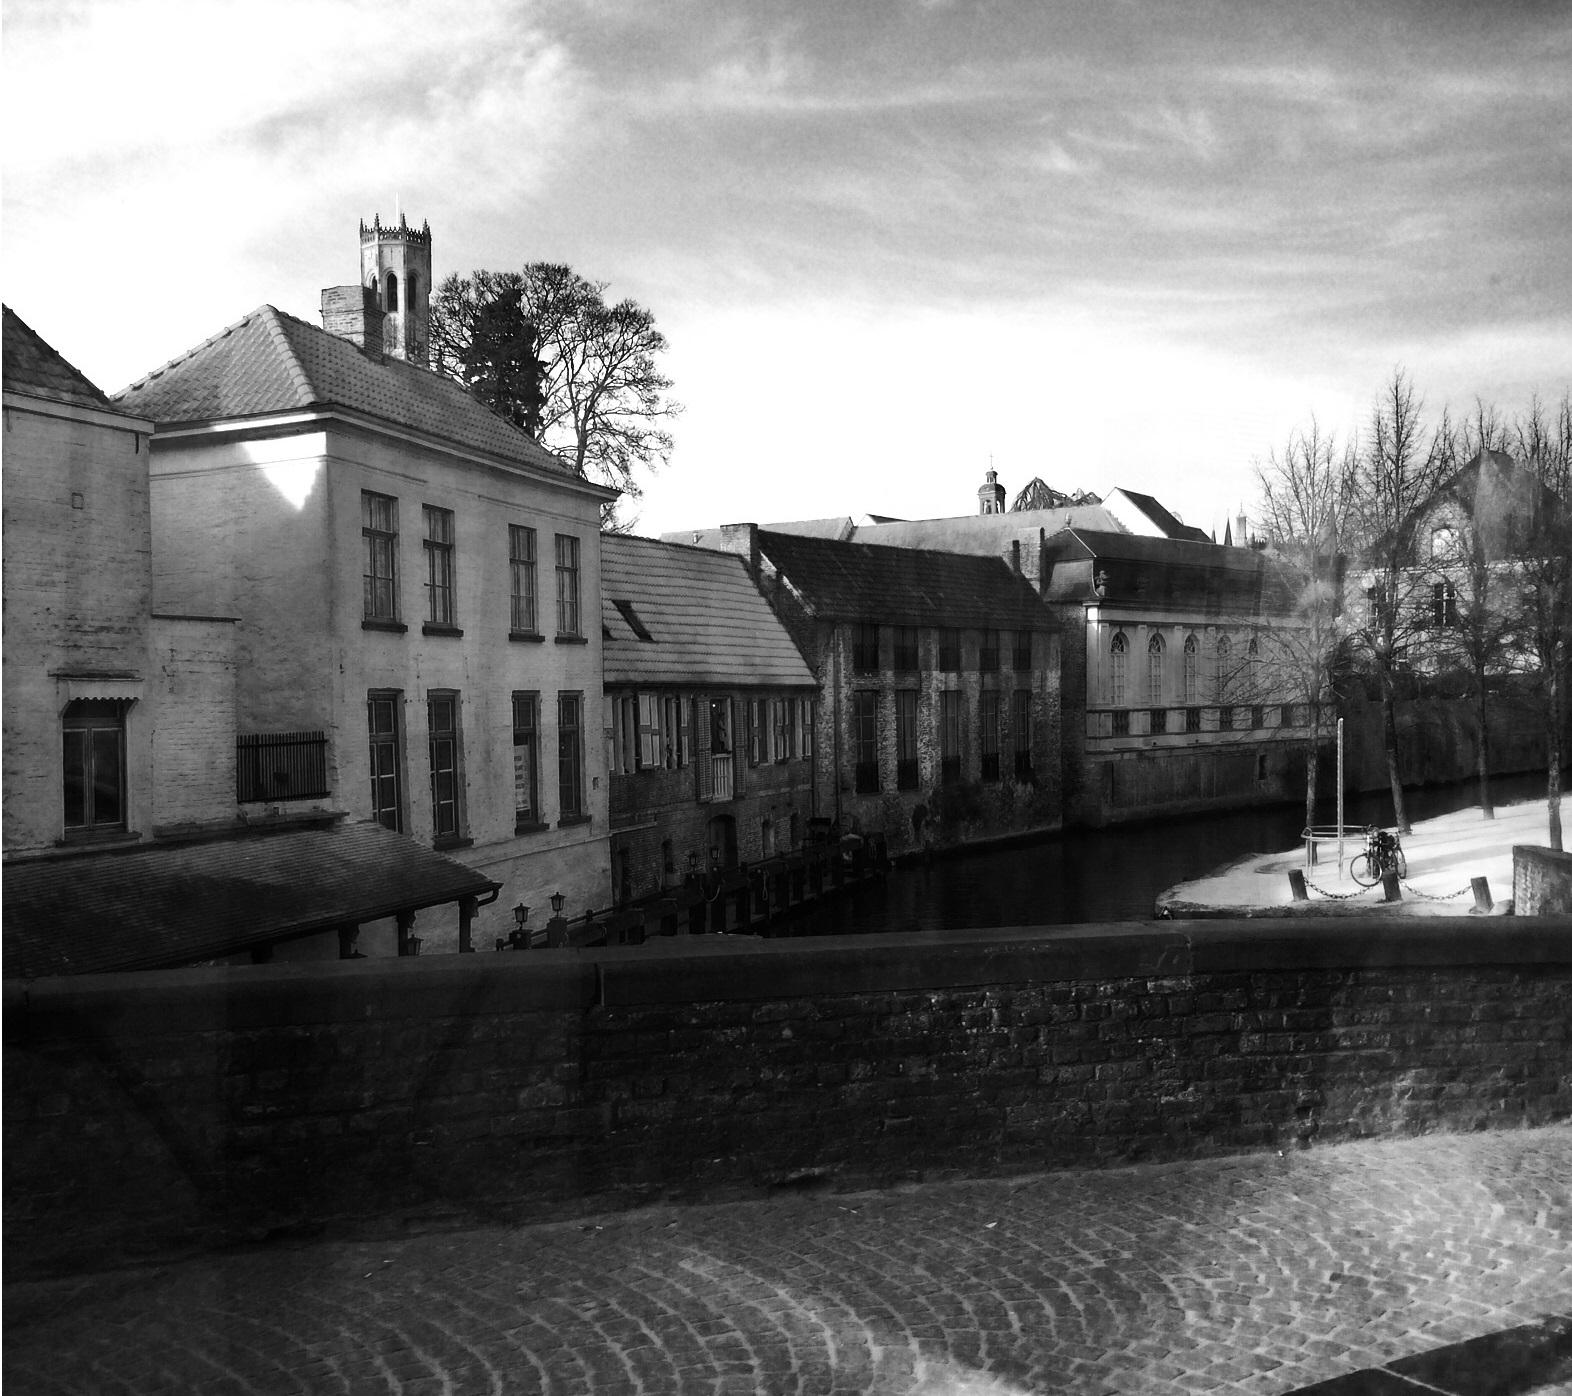 Bruges View From on the Bridge by PuzzledHeartBox